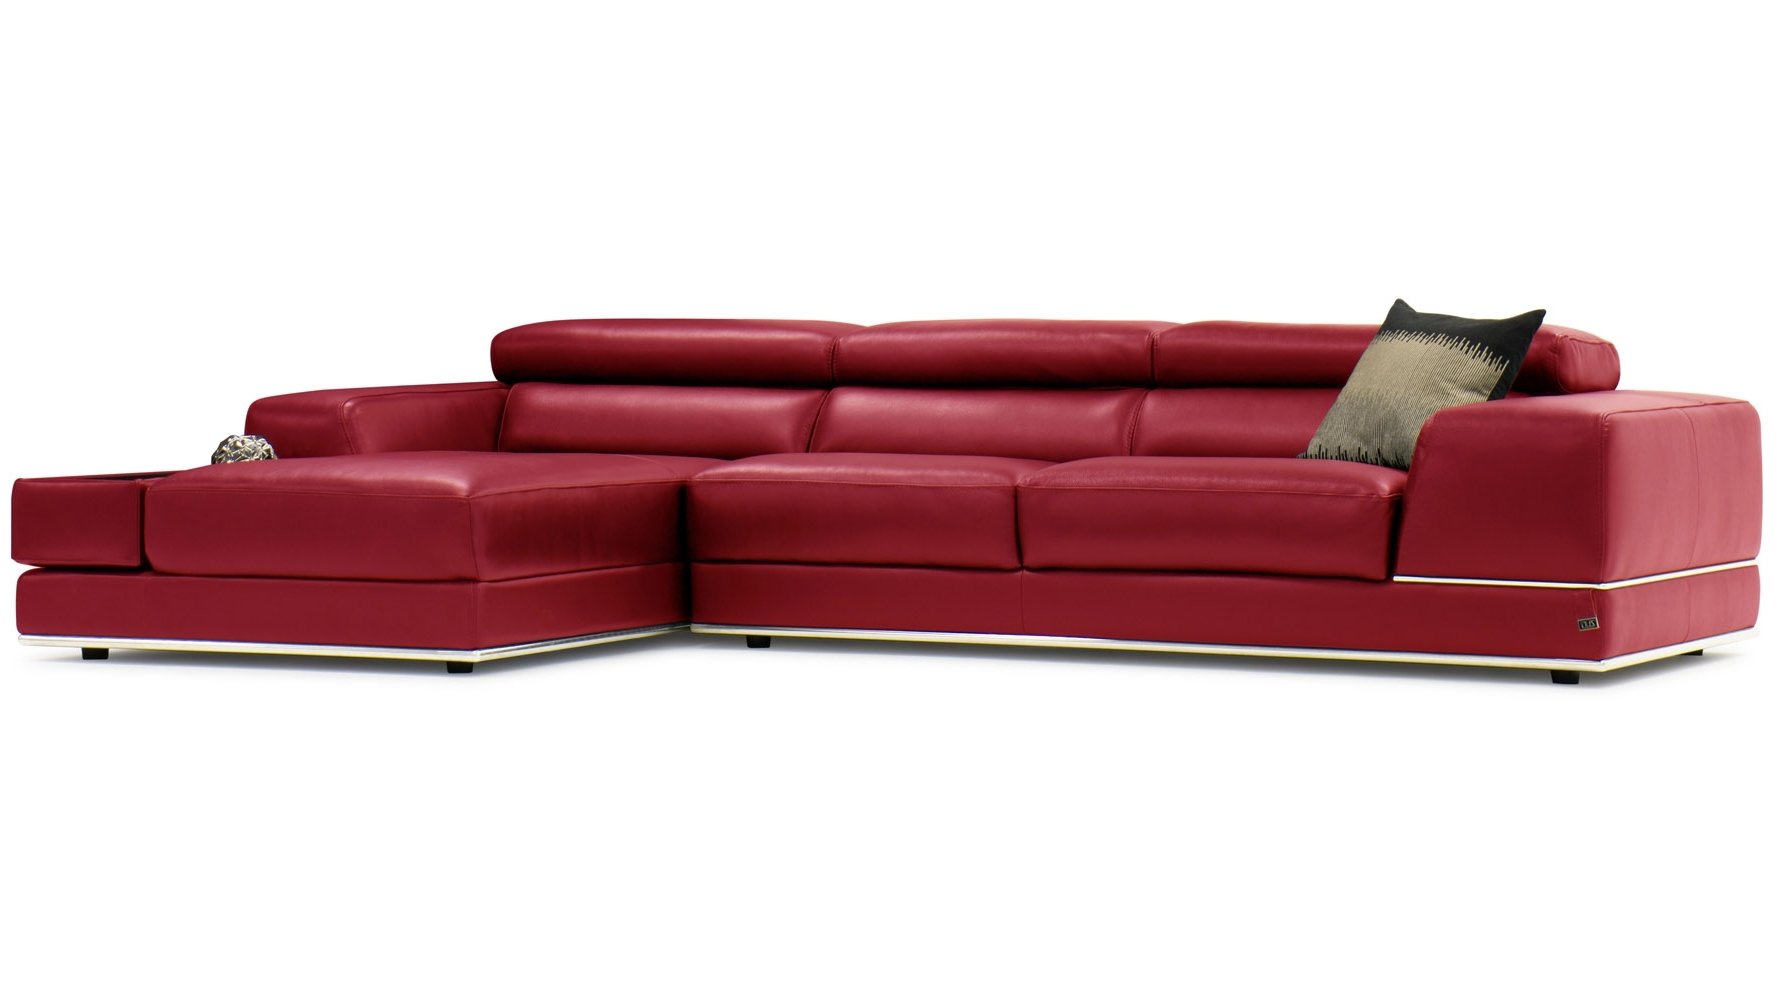 Red Leather Couches Throughout Favorite Encore Red Leather Sofa (View 10 of 15)